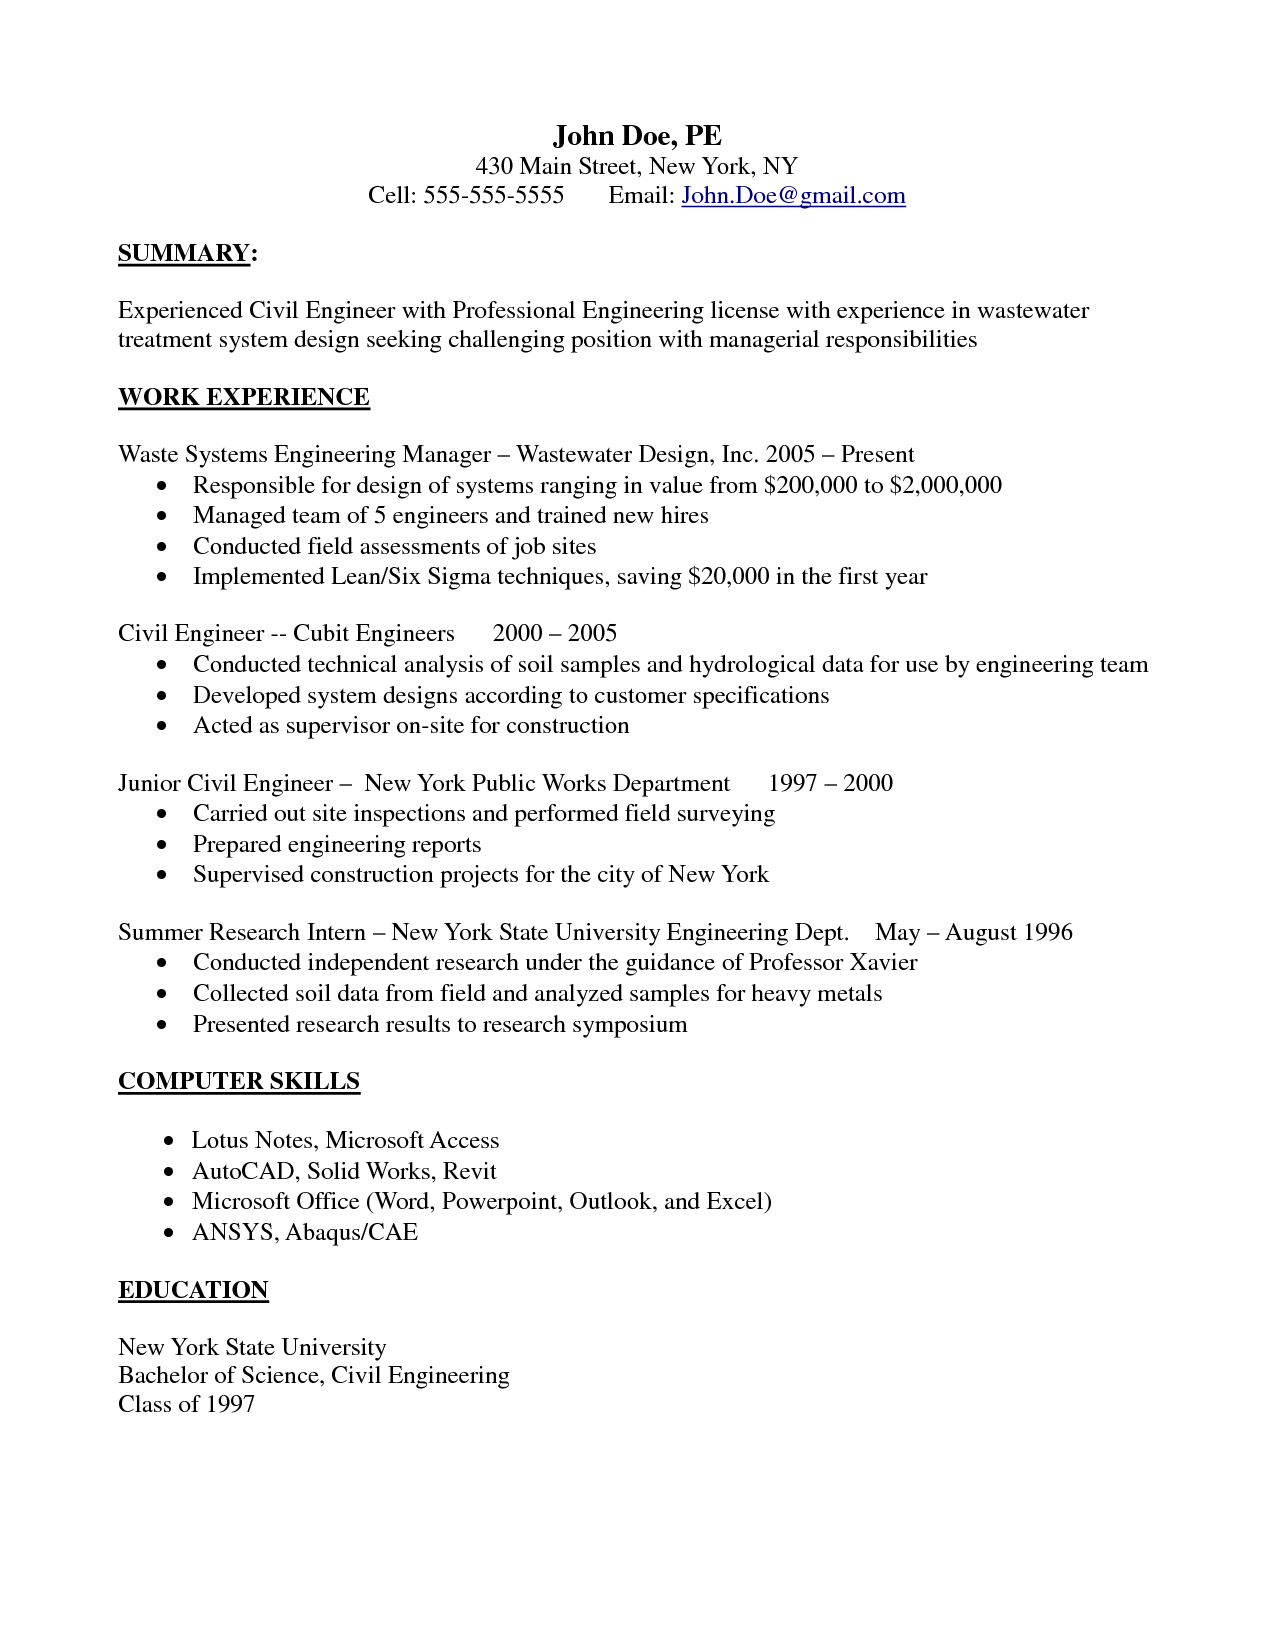 professional experience civil engineer resume templates